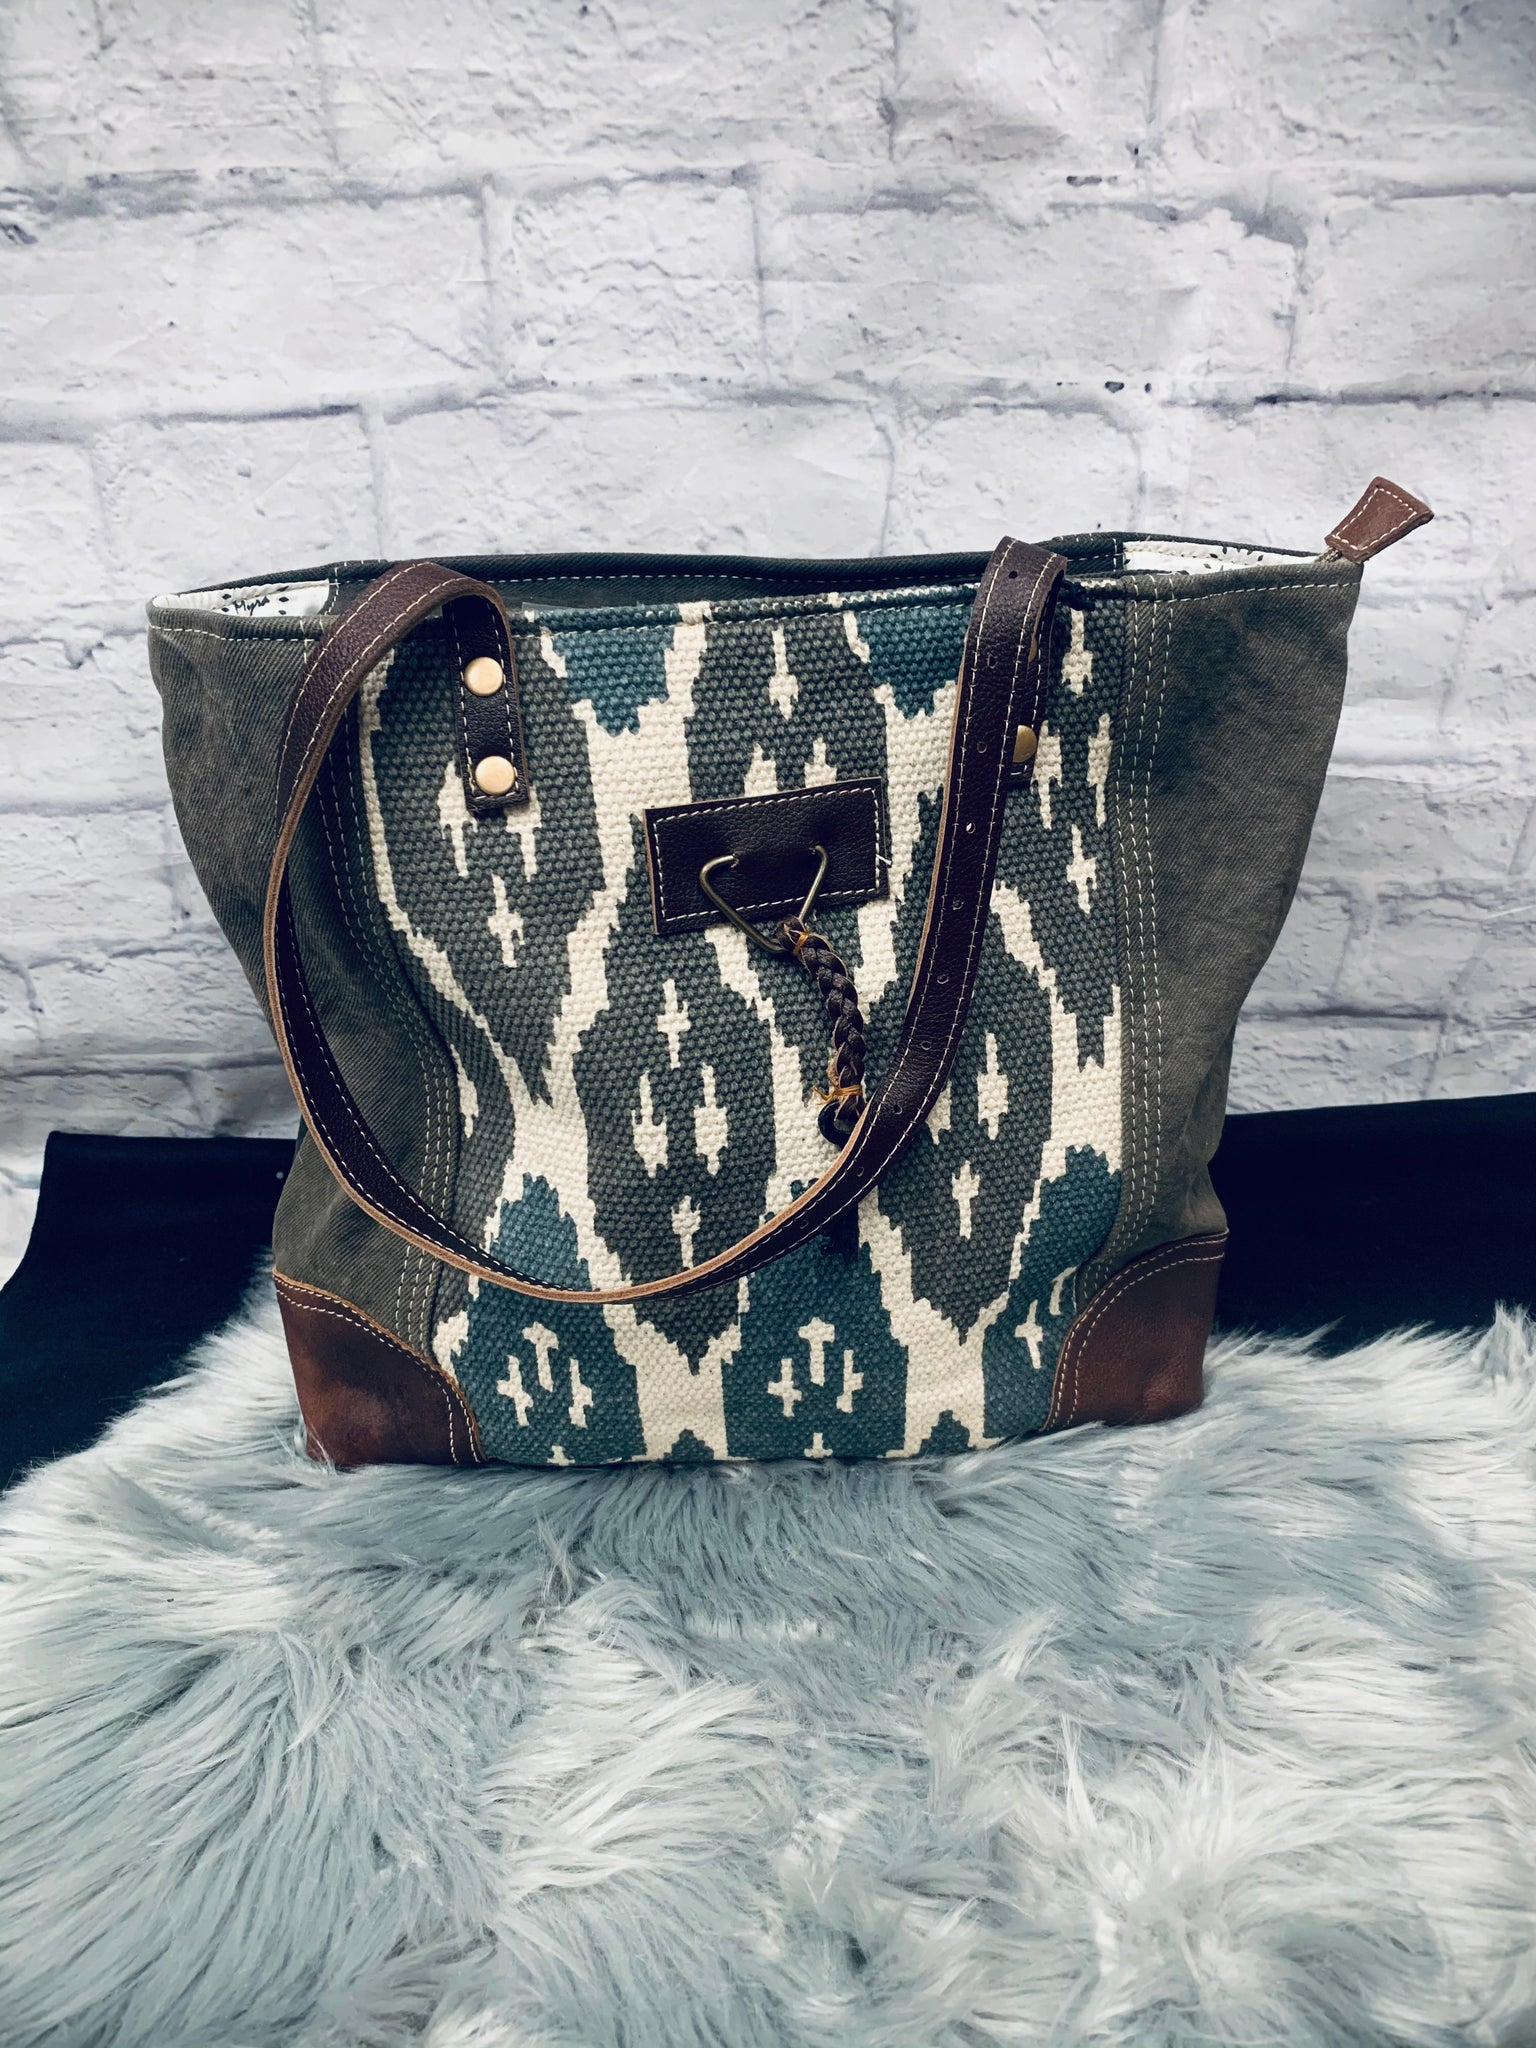 Knotty Affair Tote